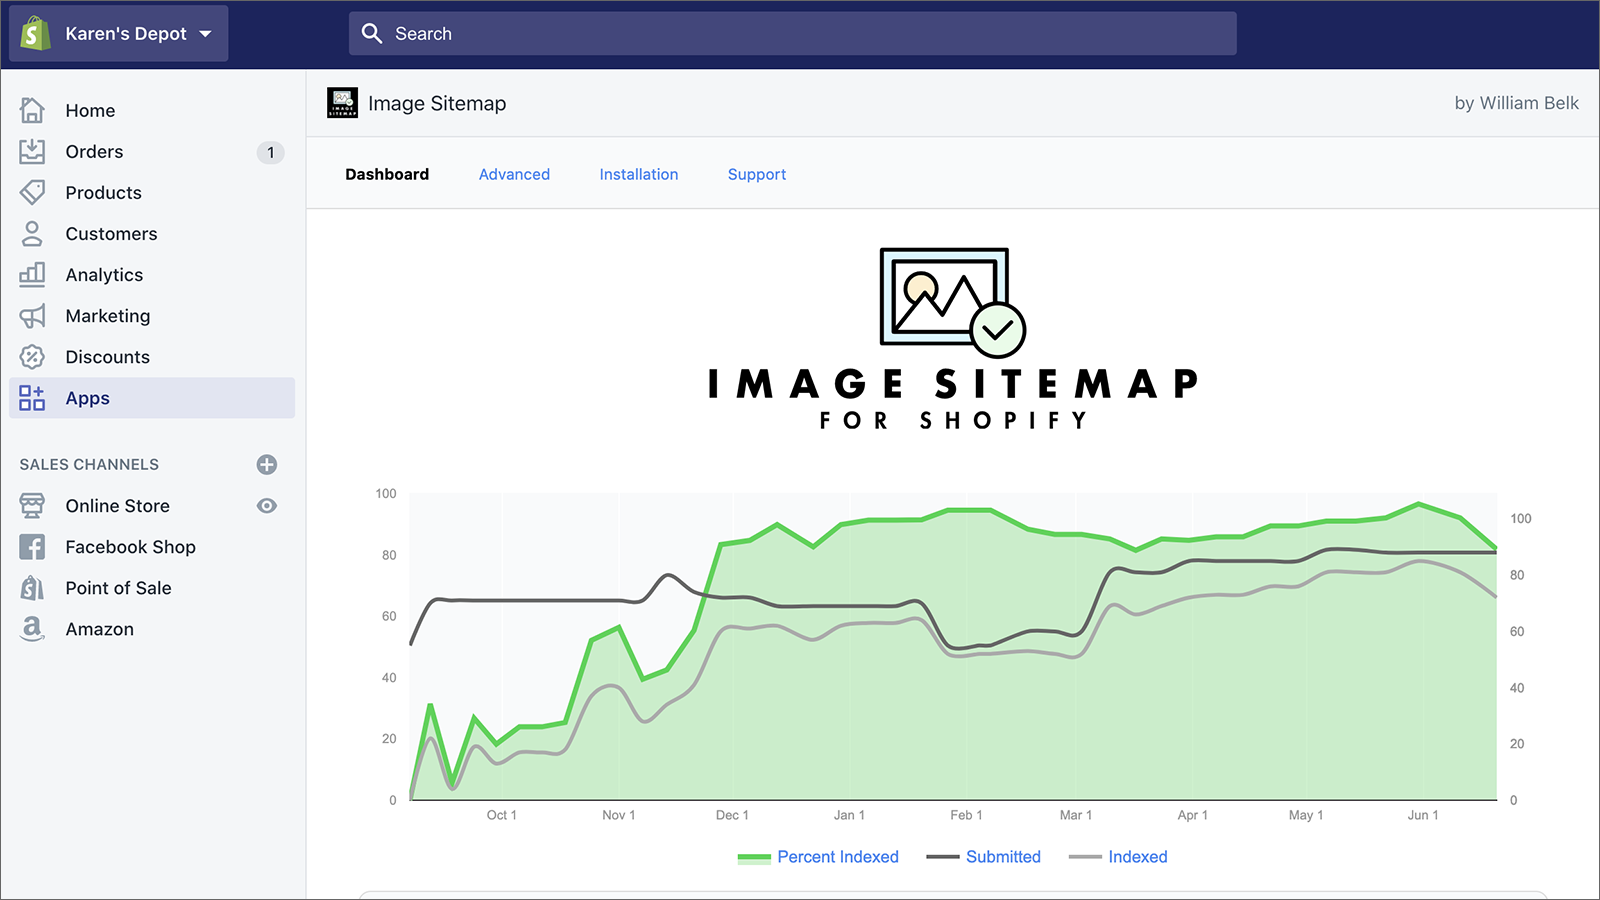 Image Sitemap for Shopify Screenshot